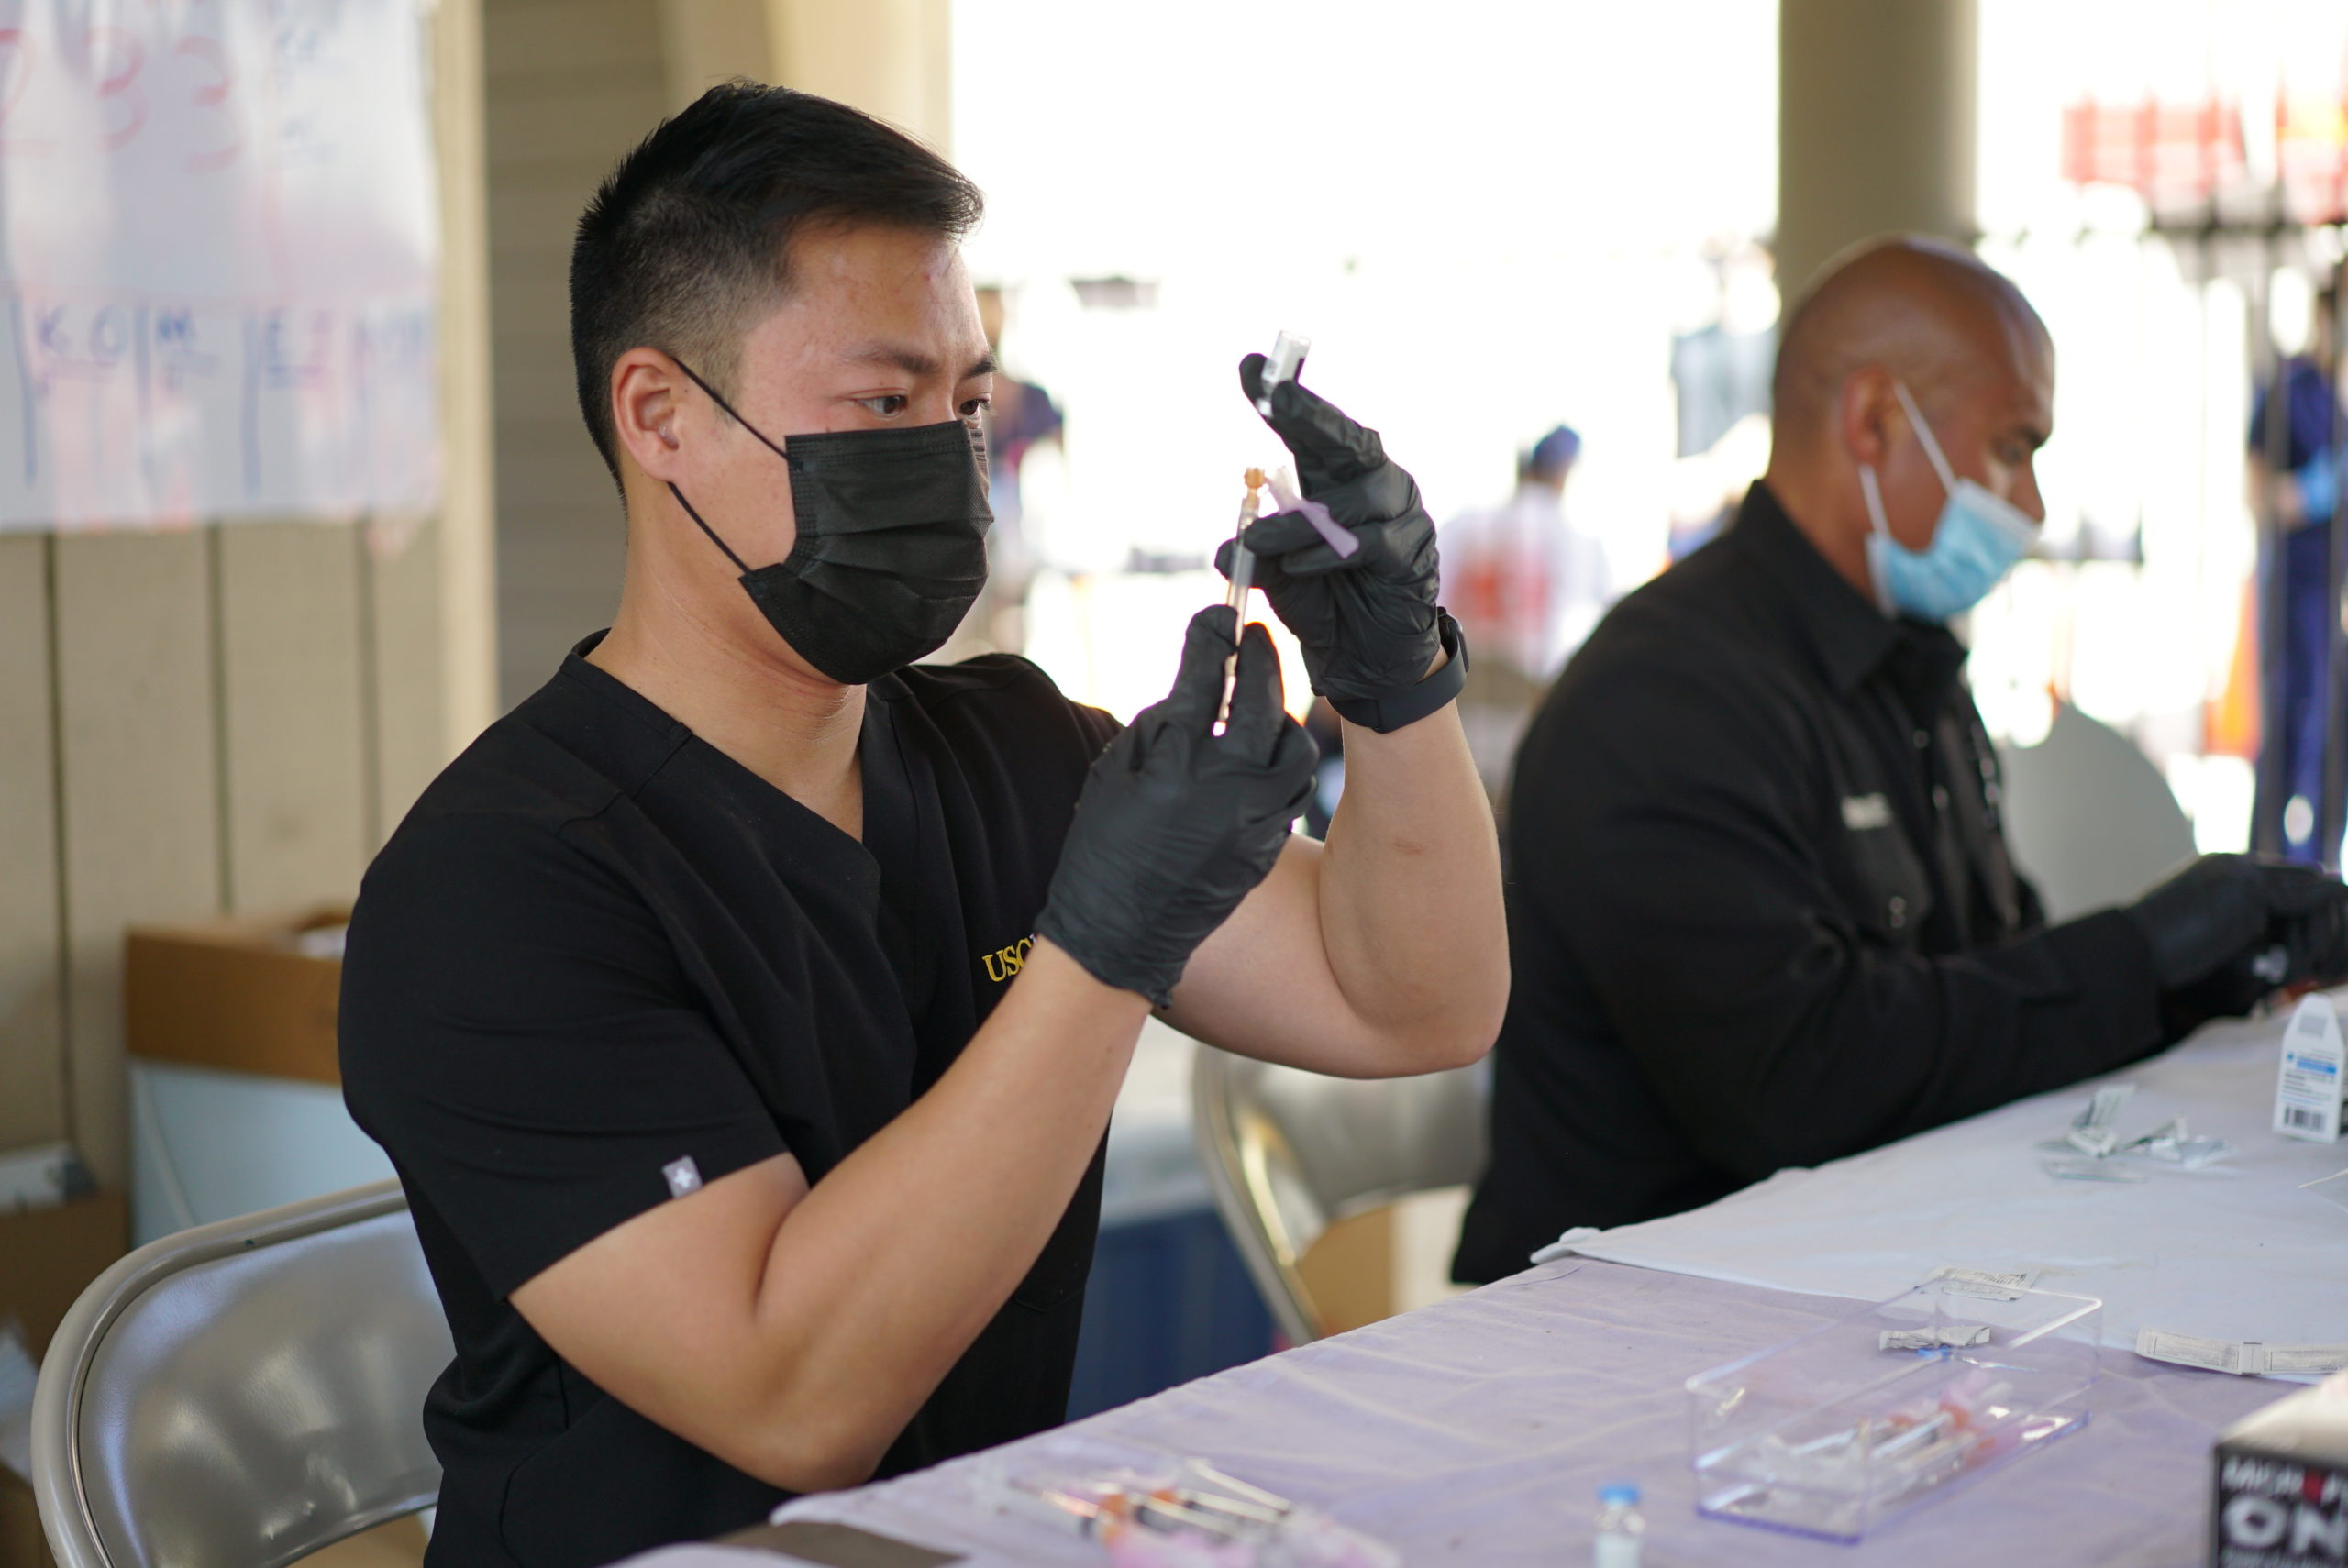 Richard Dang seated at a table in black medical scrubs, gloves and a mask filling a syringe from a vial of COVID-19 vaccine